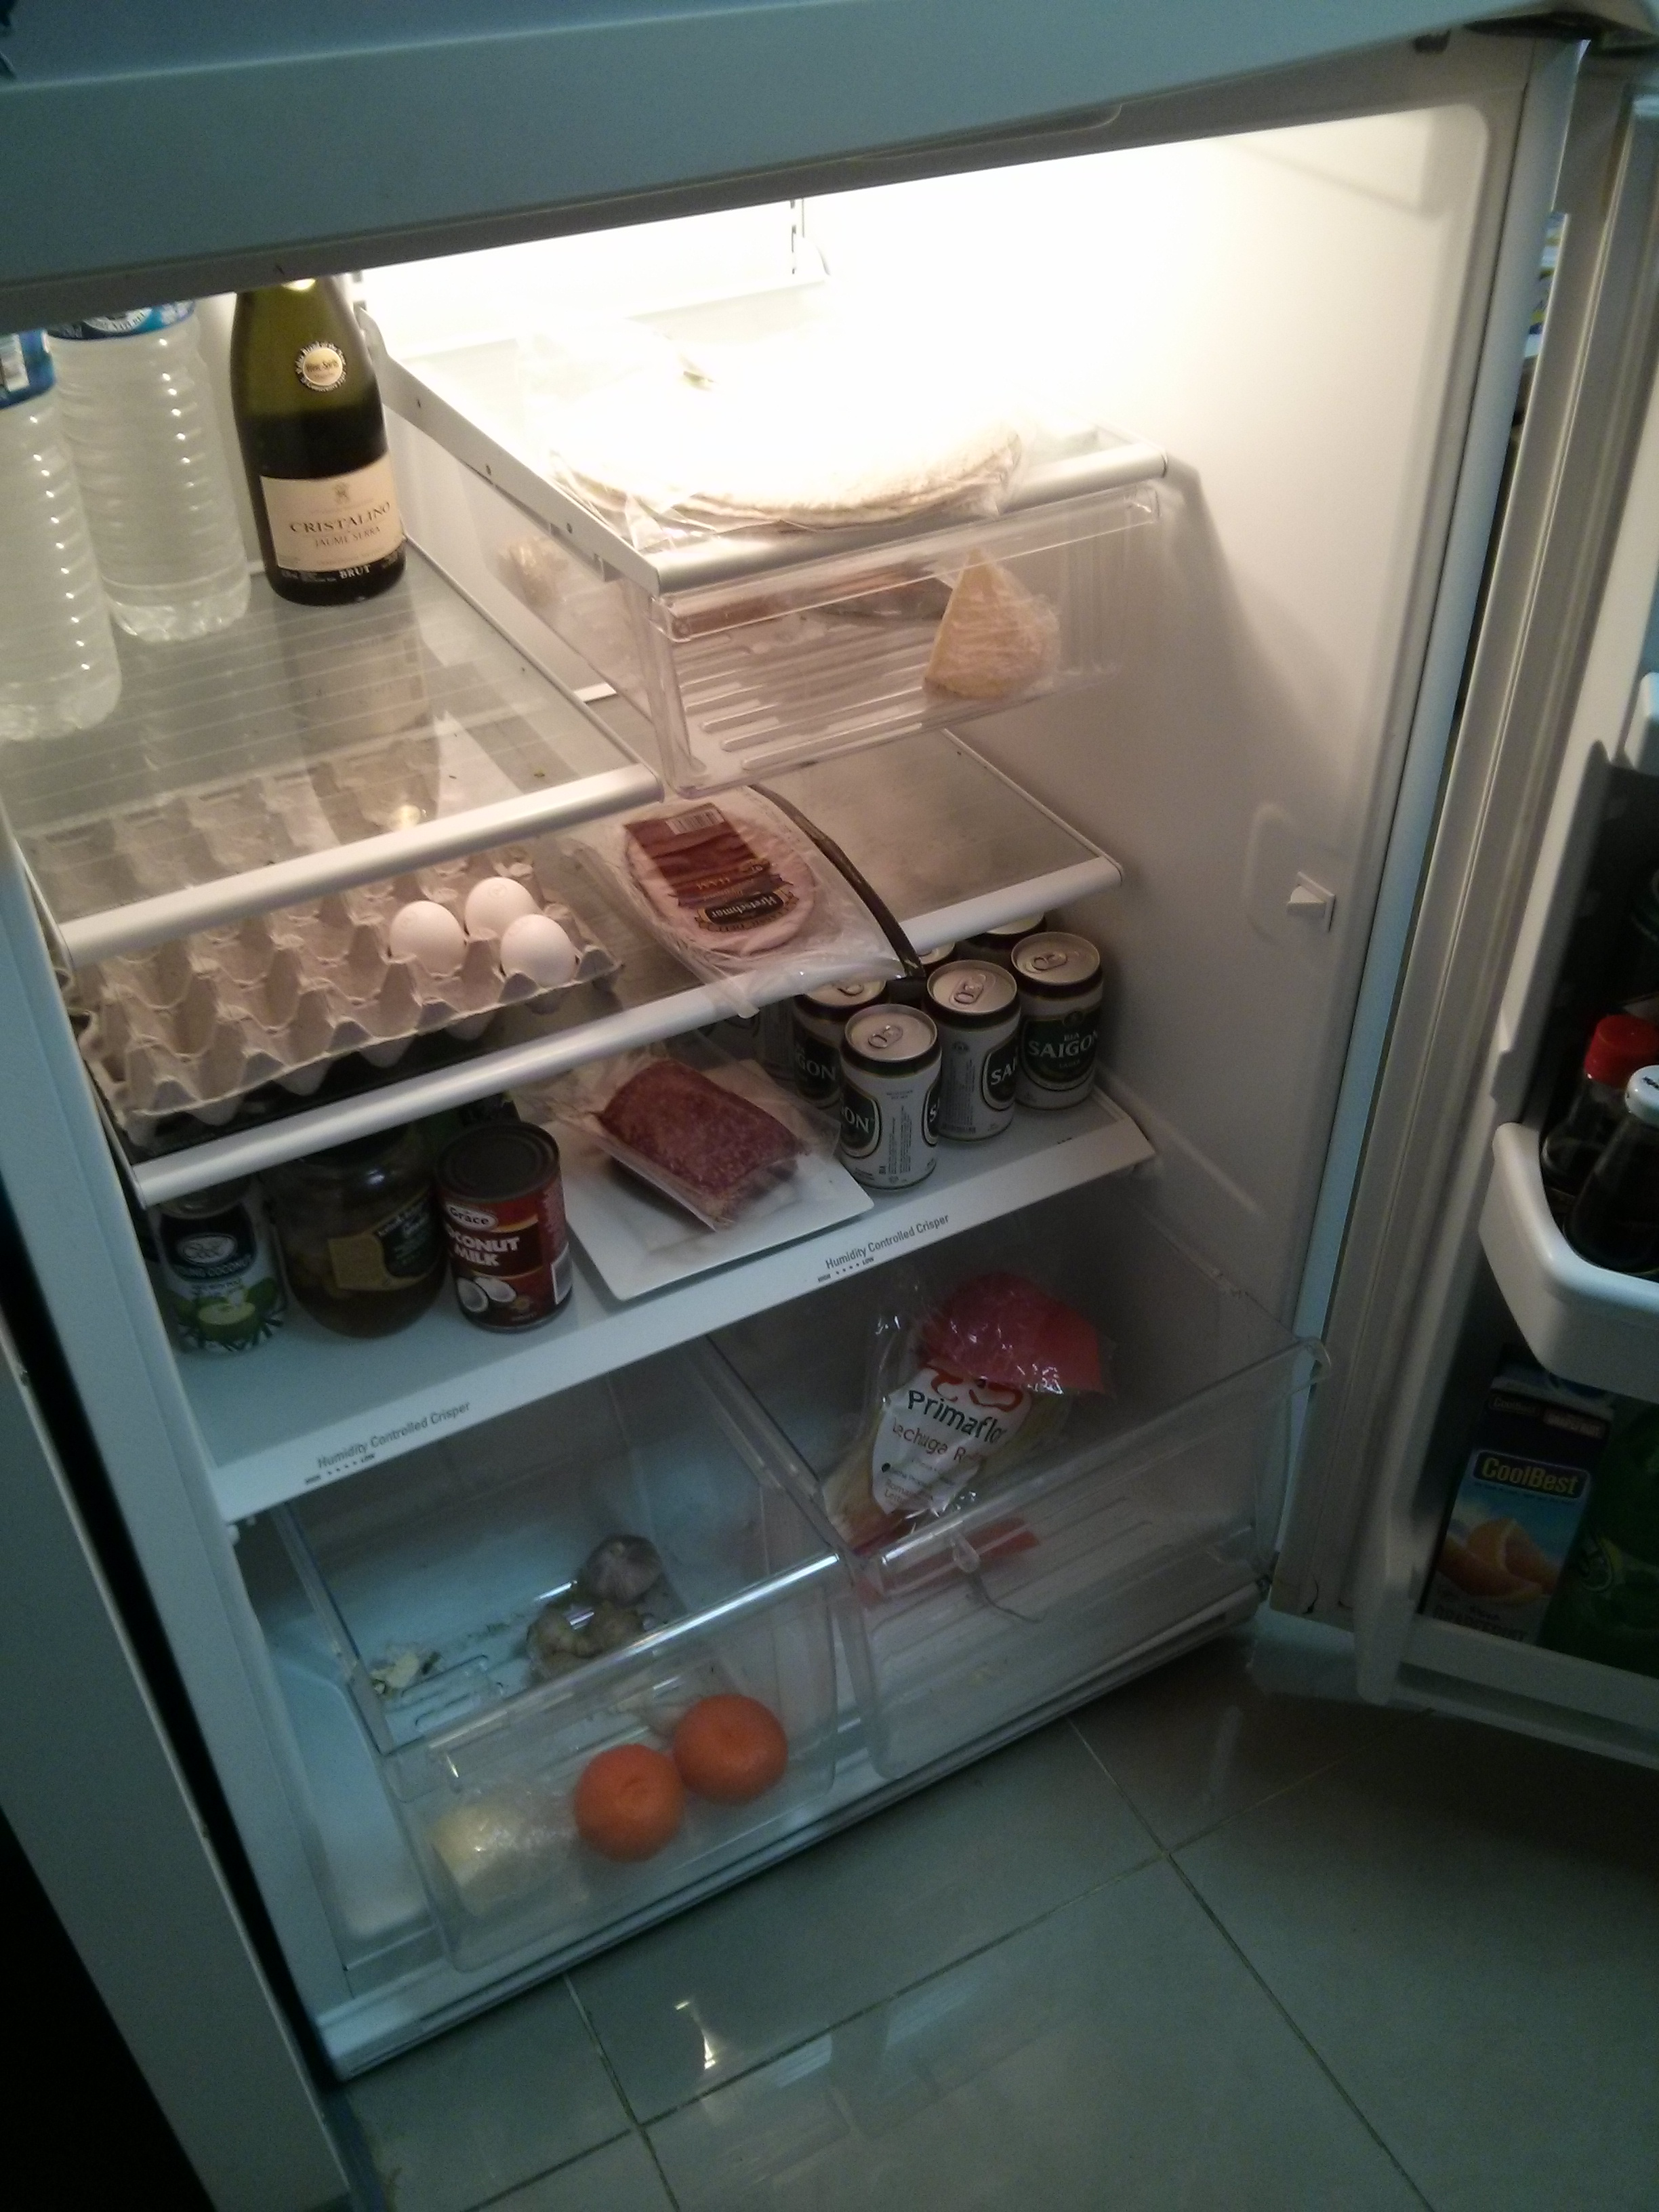 The state of our fridge pre- food drop.